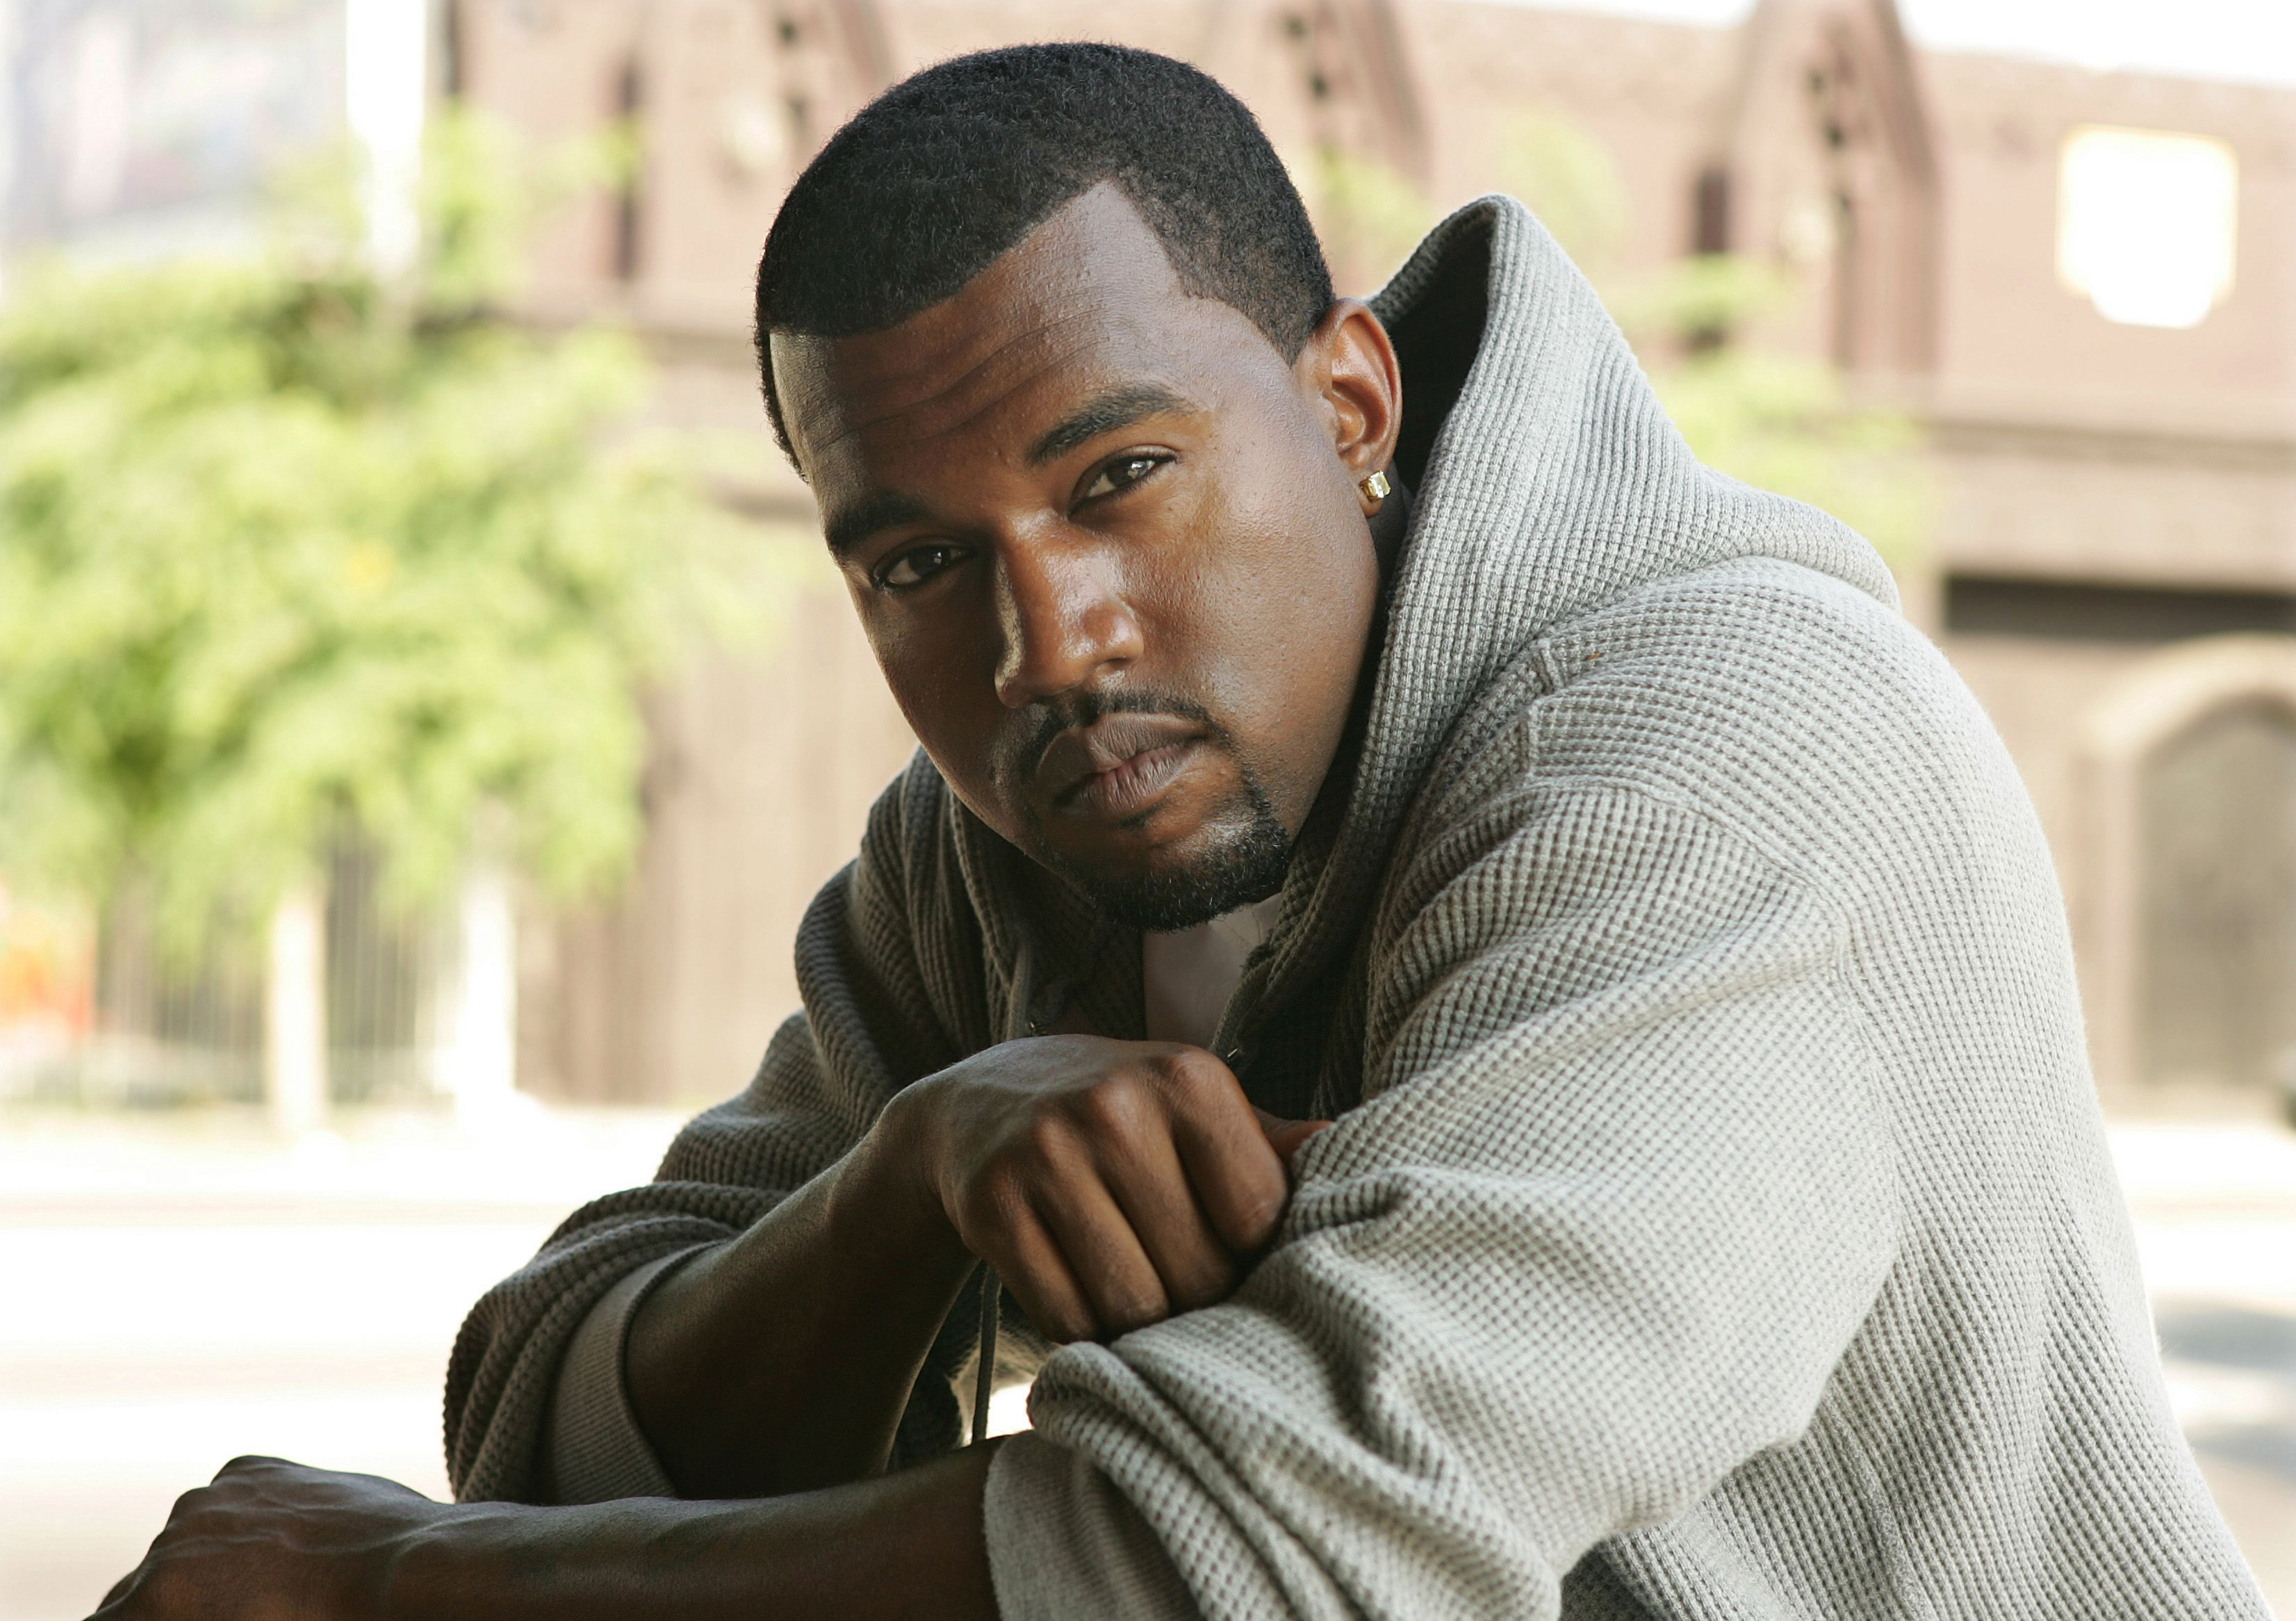 Kanye West poses for a photo outdoors, July 29, 2005 in Los Angeles, California. | Source: Getty Images